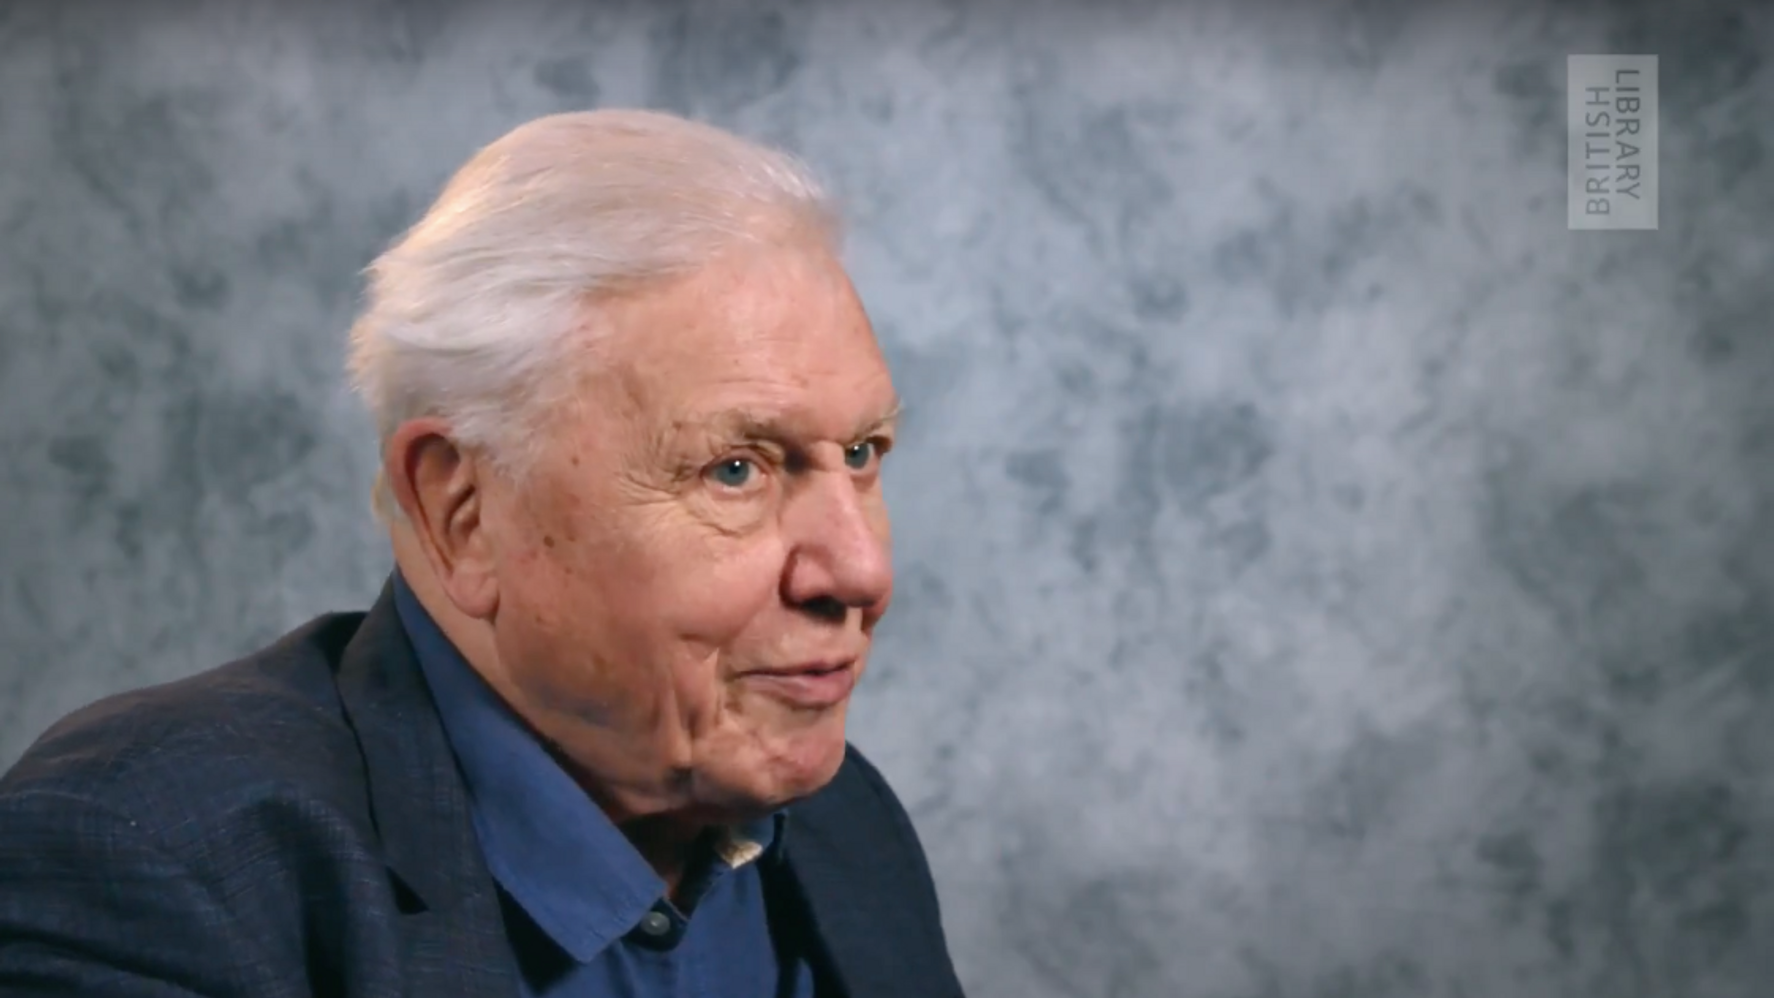 Sir David Attenborough on Joseph Banks